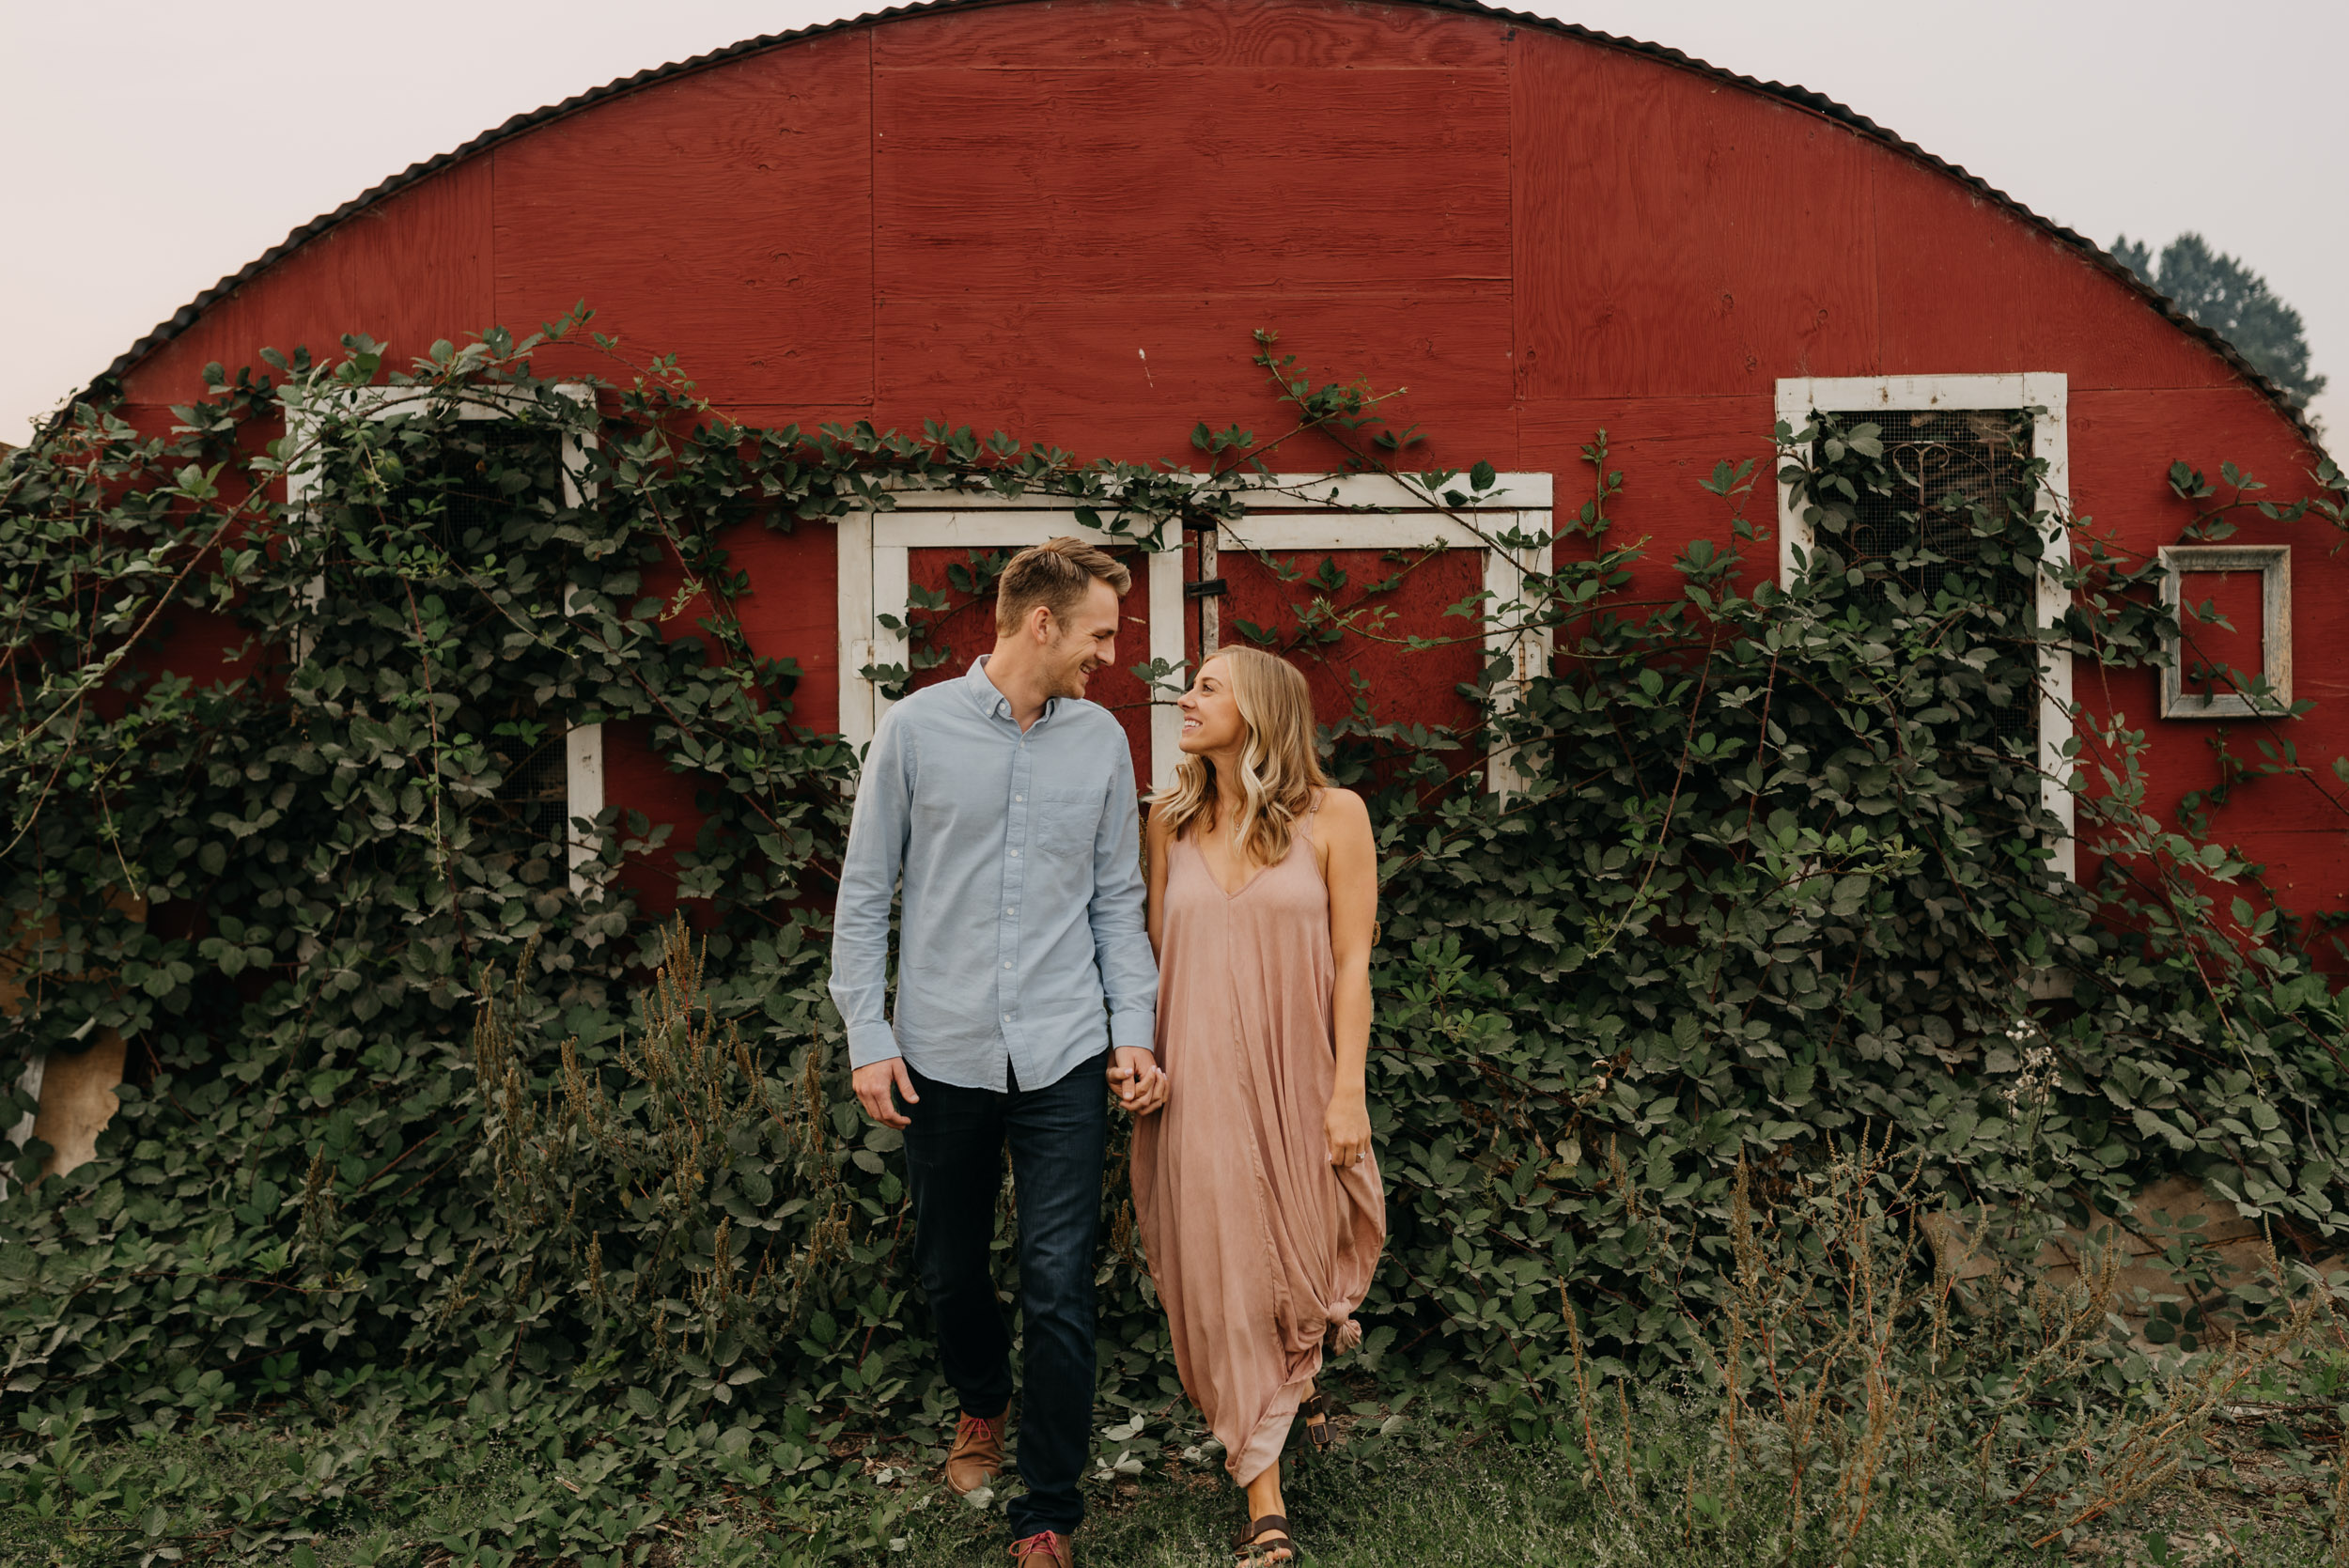 Oregon-Red-Barn-Door-Engagement-Sauvie-3424.jpg